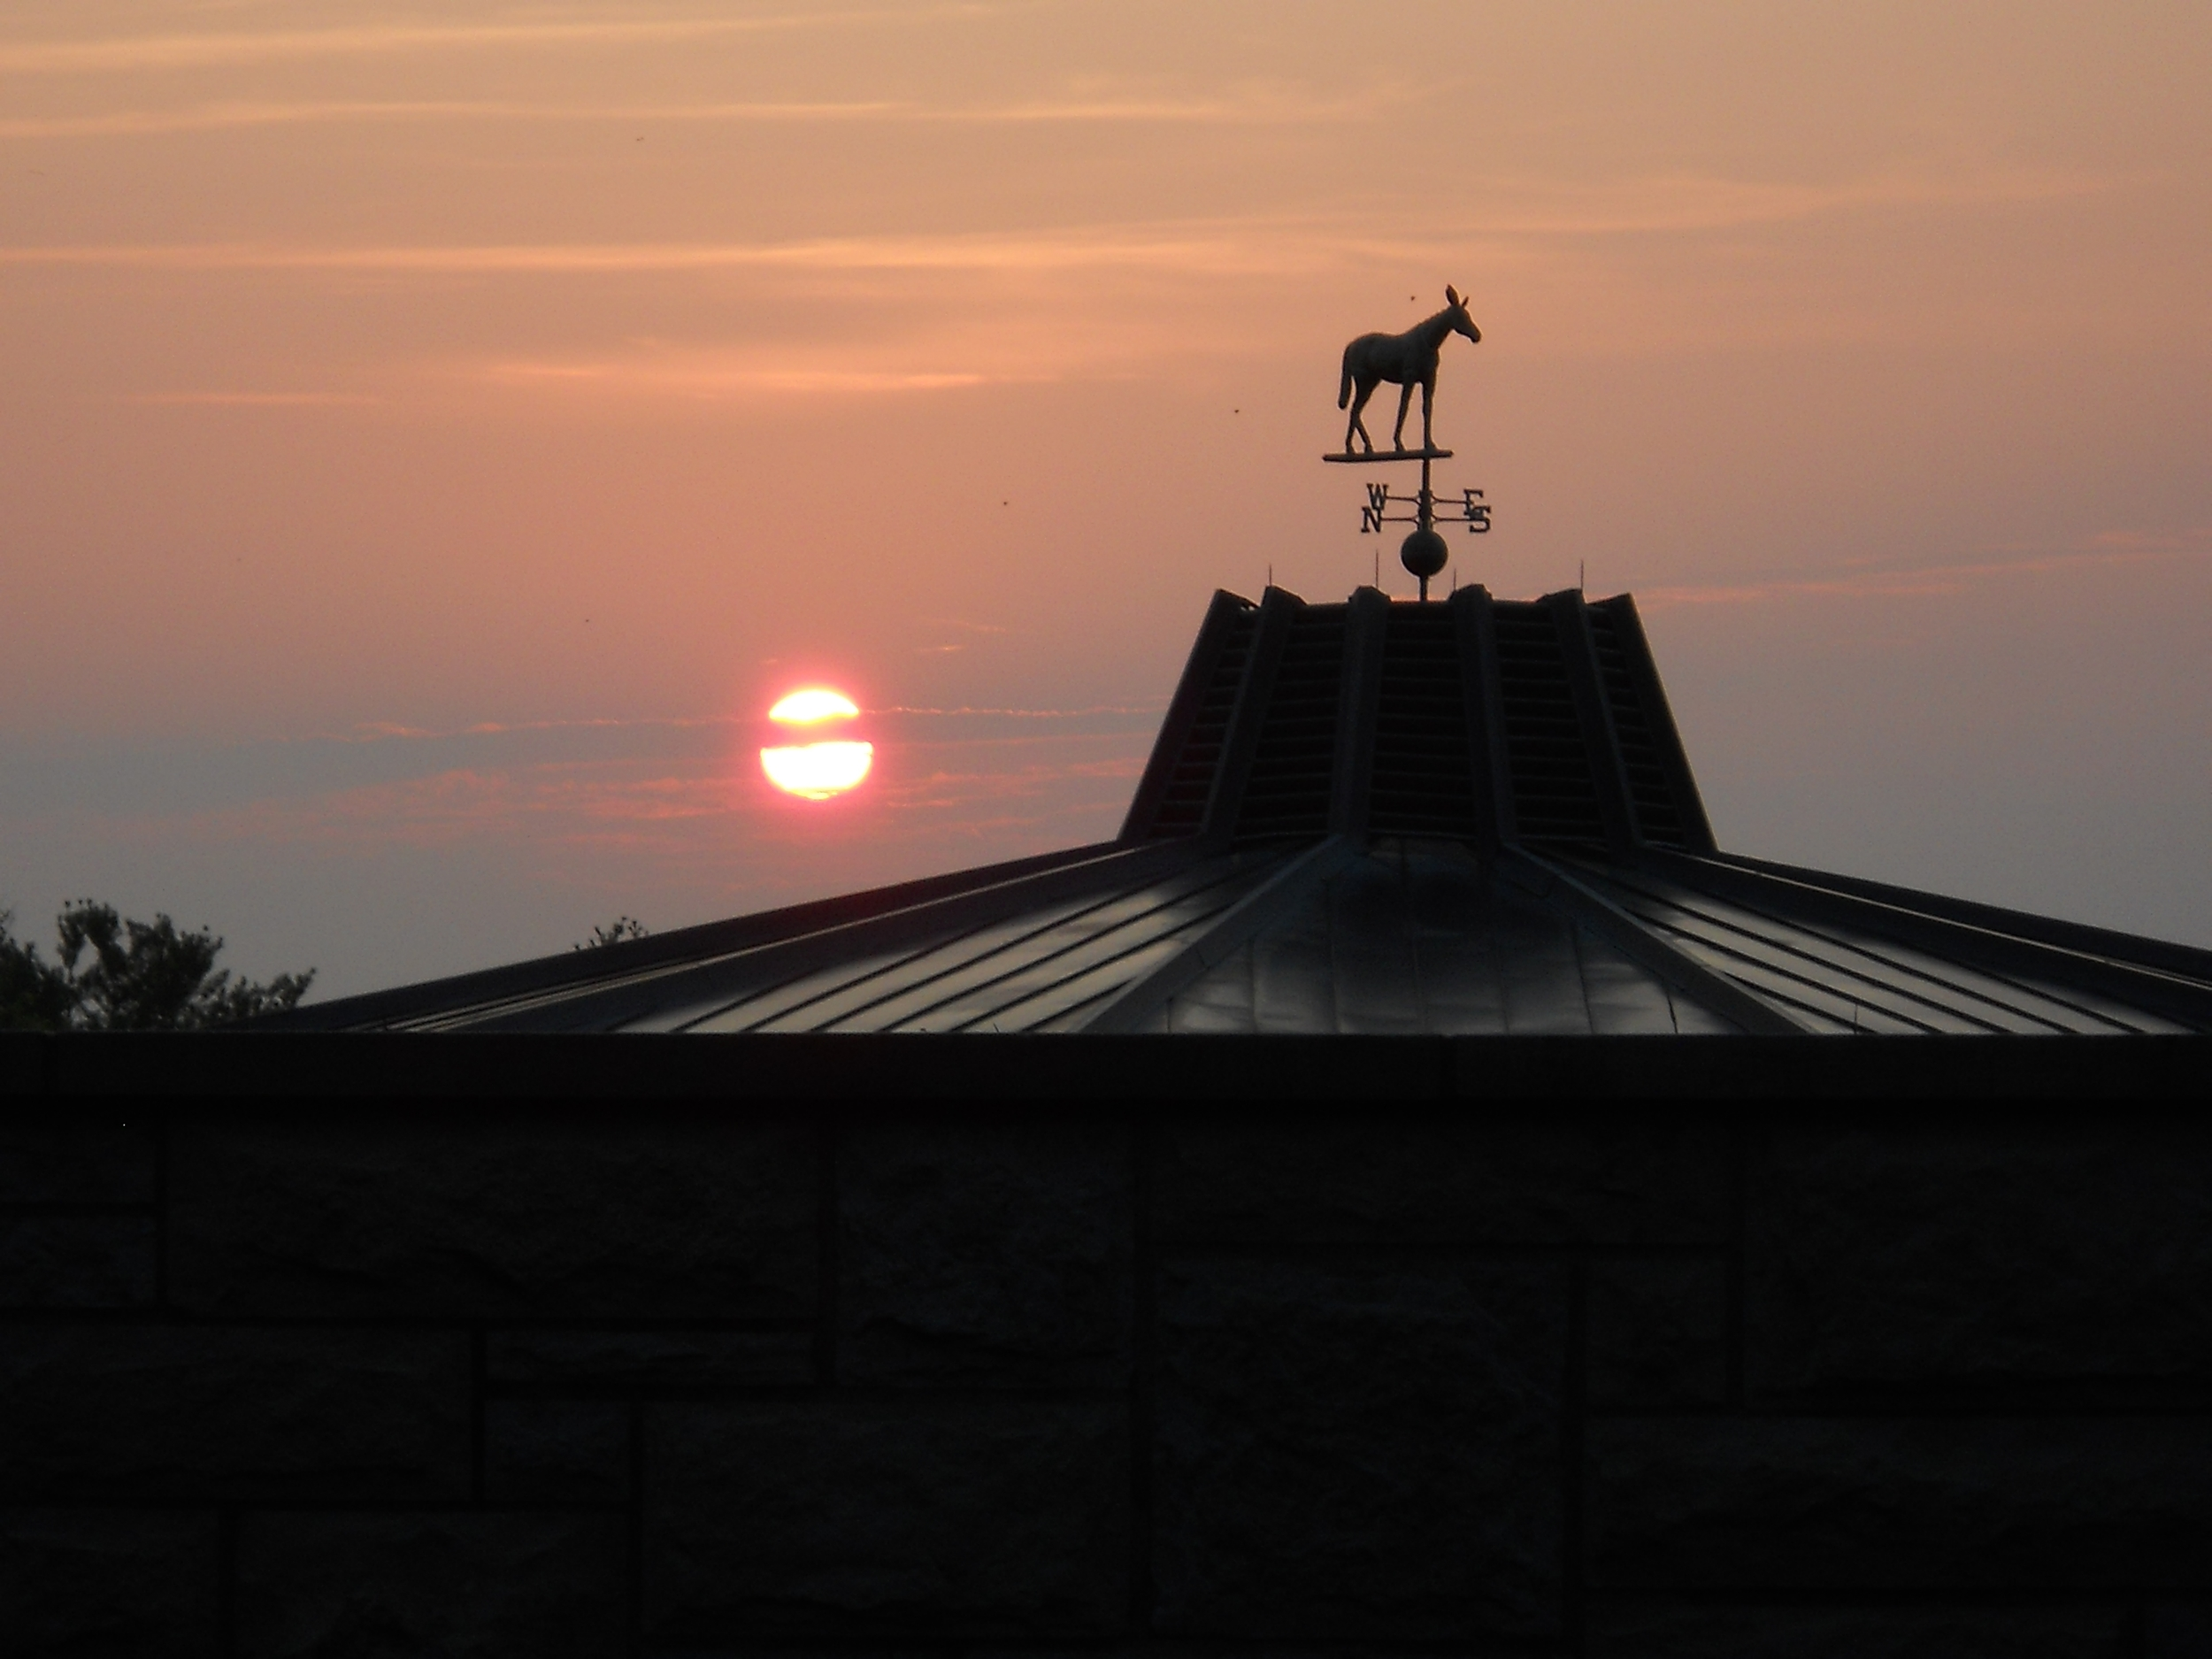 SUNRISE OVER THE KEENELAND SALES PAVILION